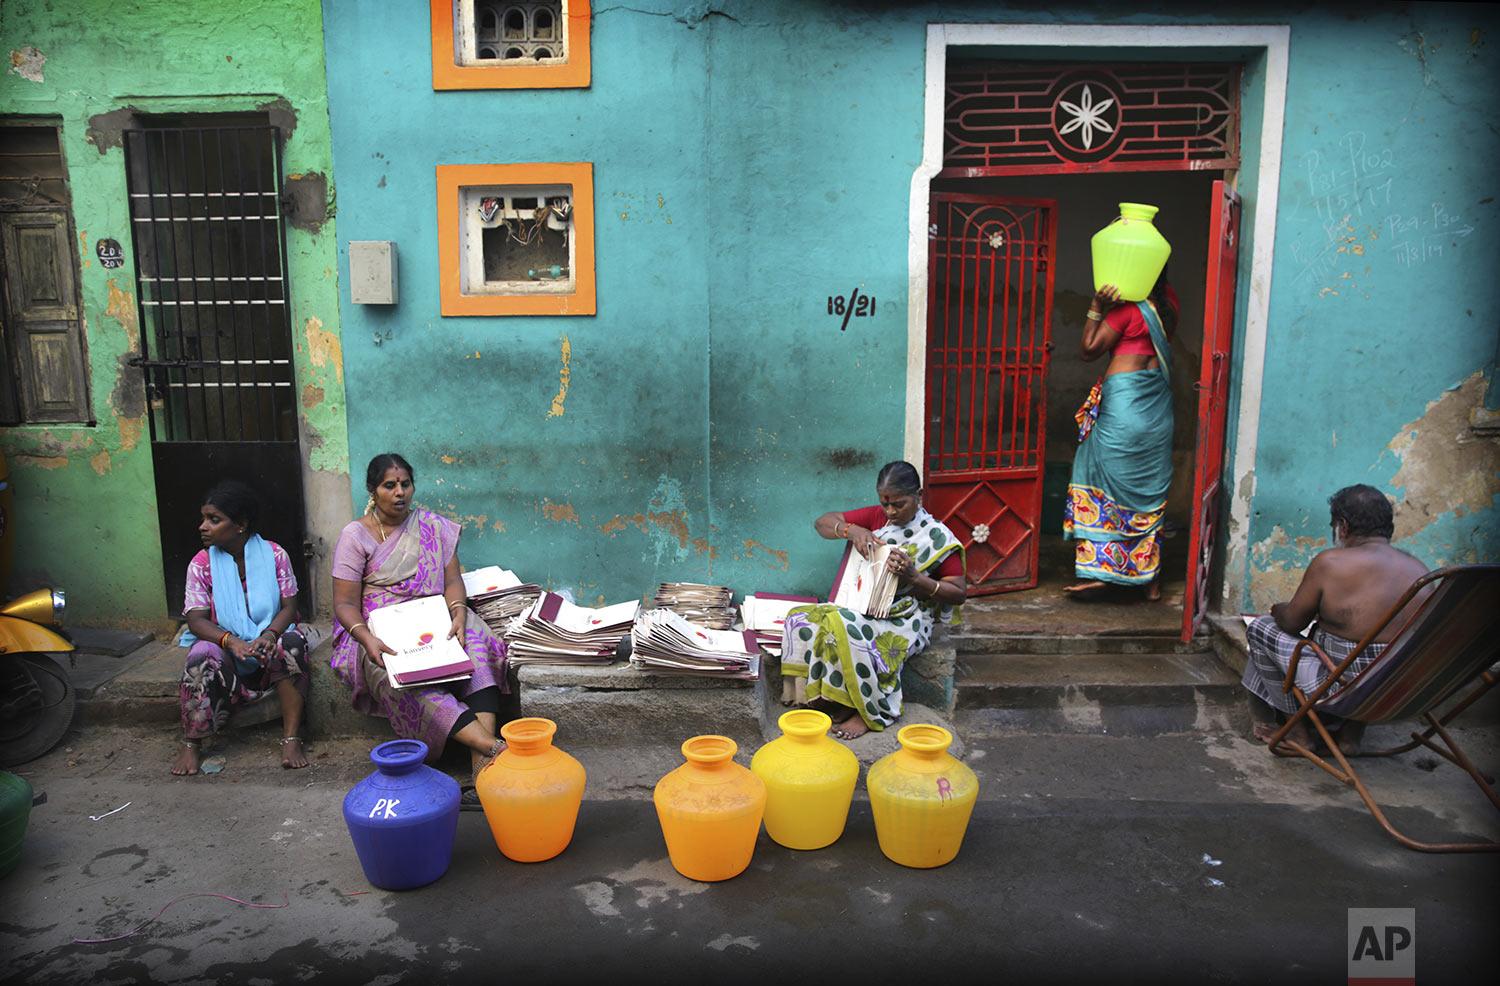 Residents fill drinking water from a water truck in Chennai in Southern Indian state of Tamil Nadu, Monday, July 15, 2019. (AP Photo/Manish Swarup)